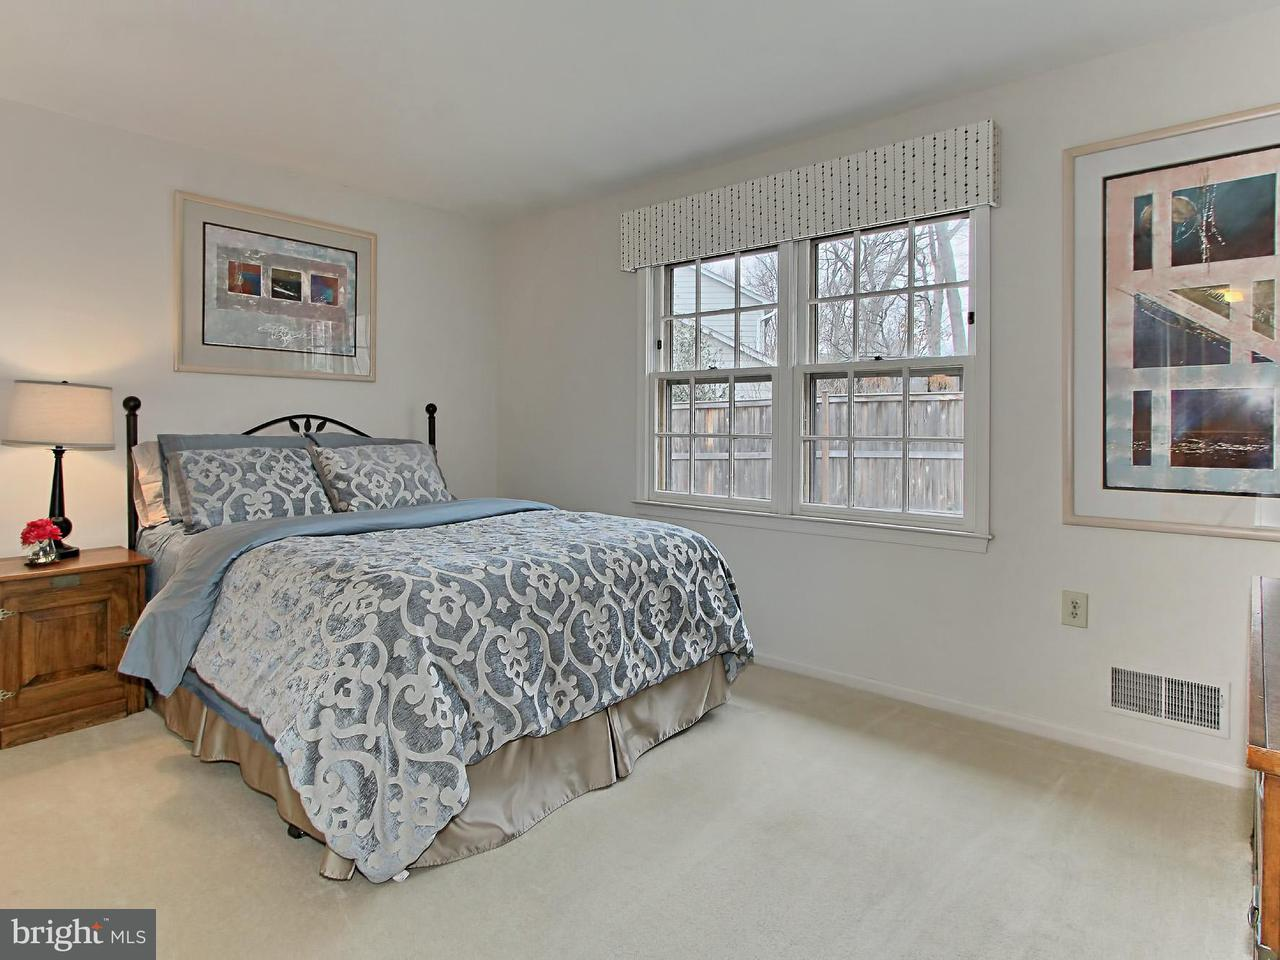 Additional photo for property listing at 4415 Eastwood Court 4415 Eastwood Court Fairfax, Βιρτζινια 22032 Ηνωμενεσ Πολιτειεσ